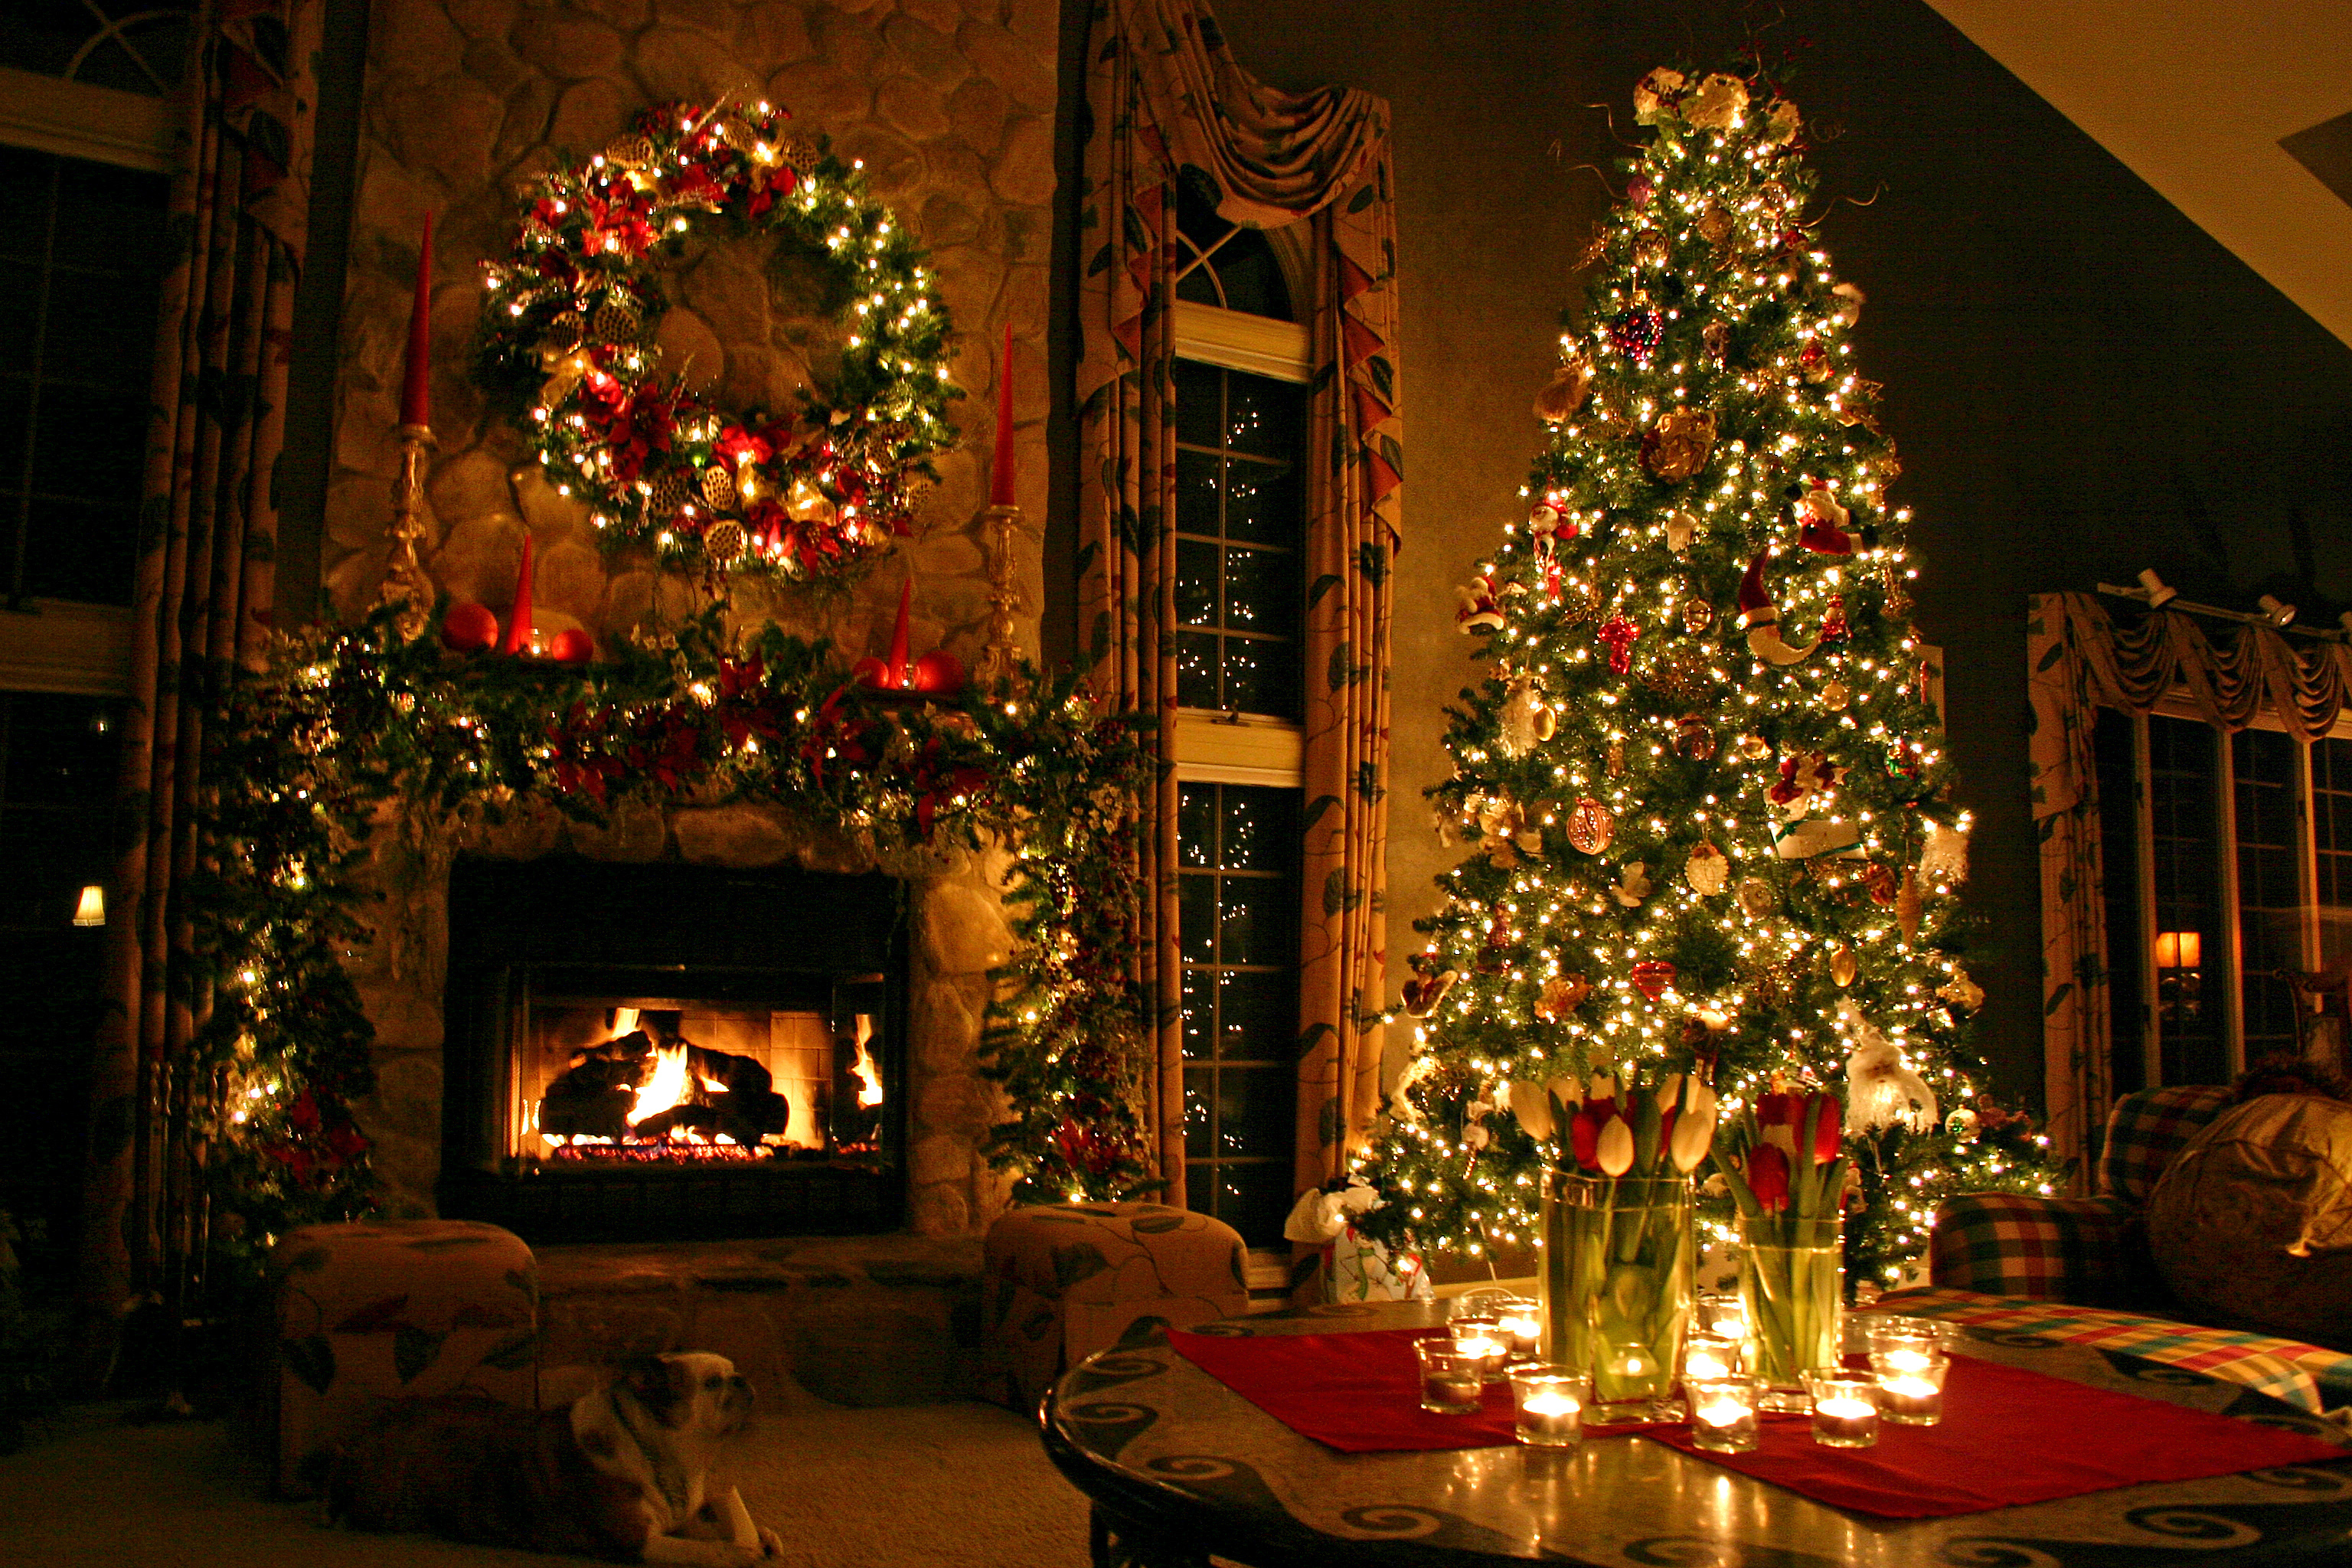 10 Christmas Tree Facts To Make You Feel Festive